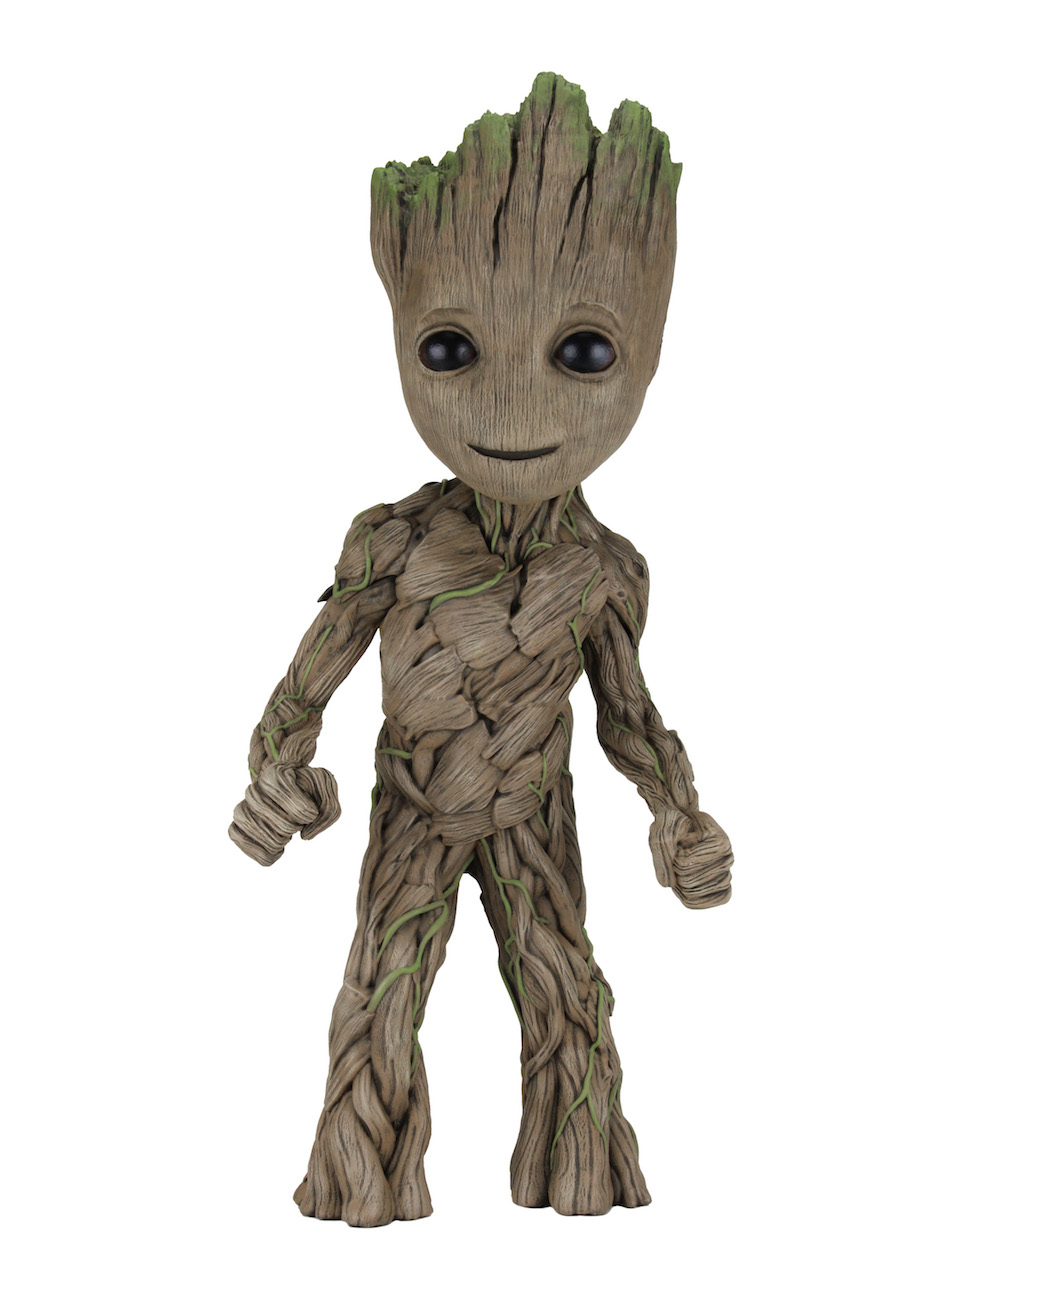 NECA Toys Guardians Of The Galaxy Vol. 2 Groot 30″ Tall Foam Figure On Amazon & eBay Storefronts